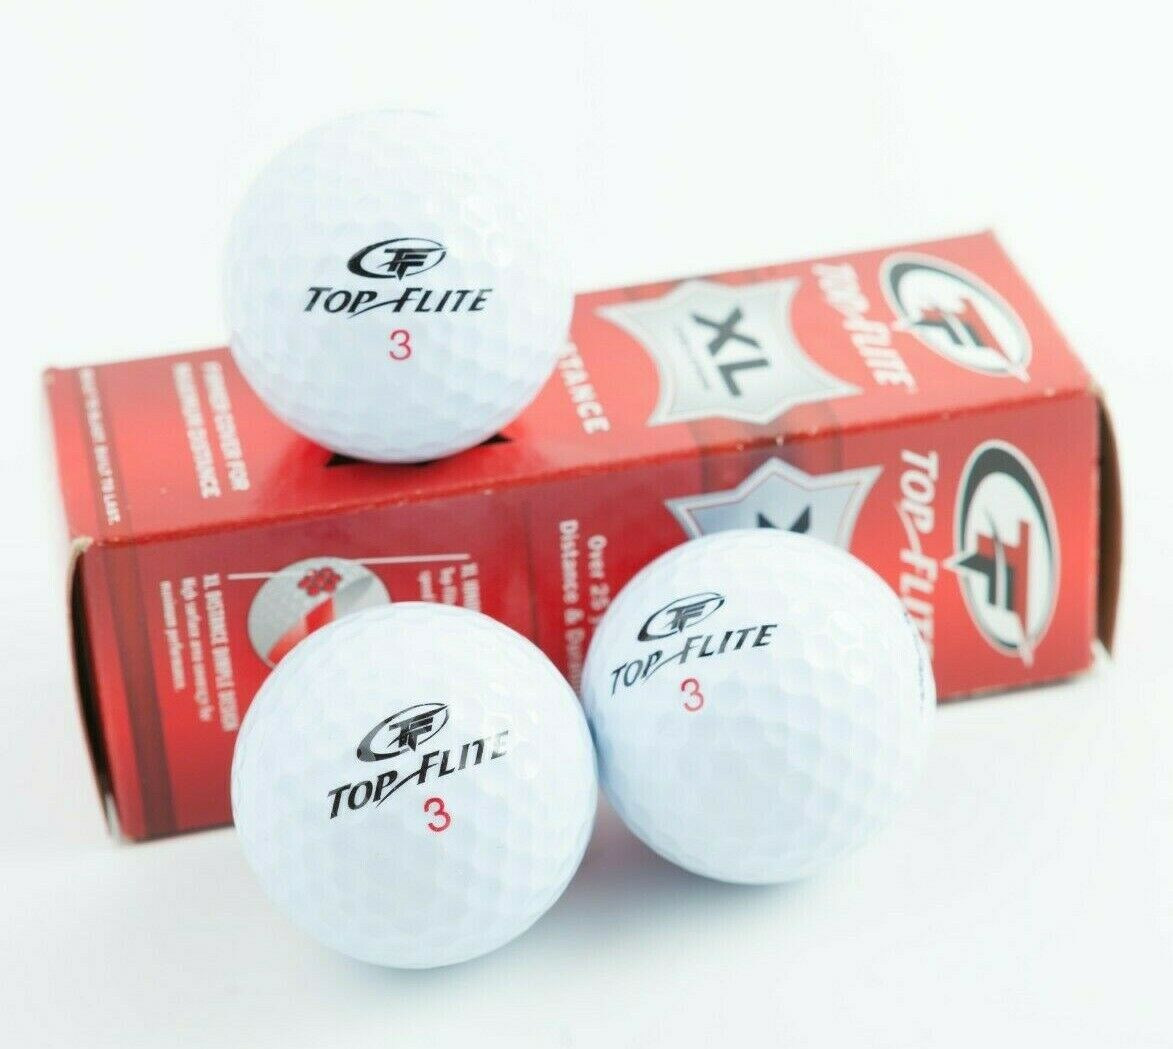 TOP FLITE XL Long Distance Golf Balls Firm Cover Maximum Distance 3 Pk 1 Sleeve